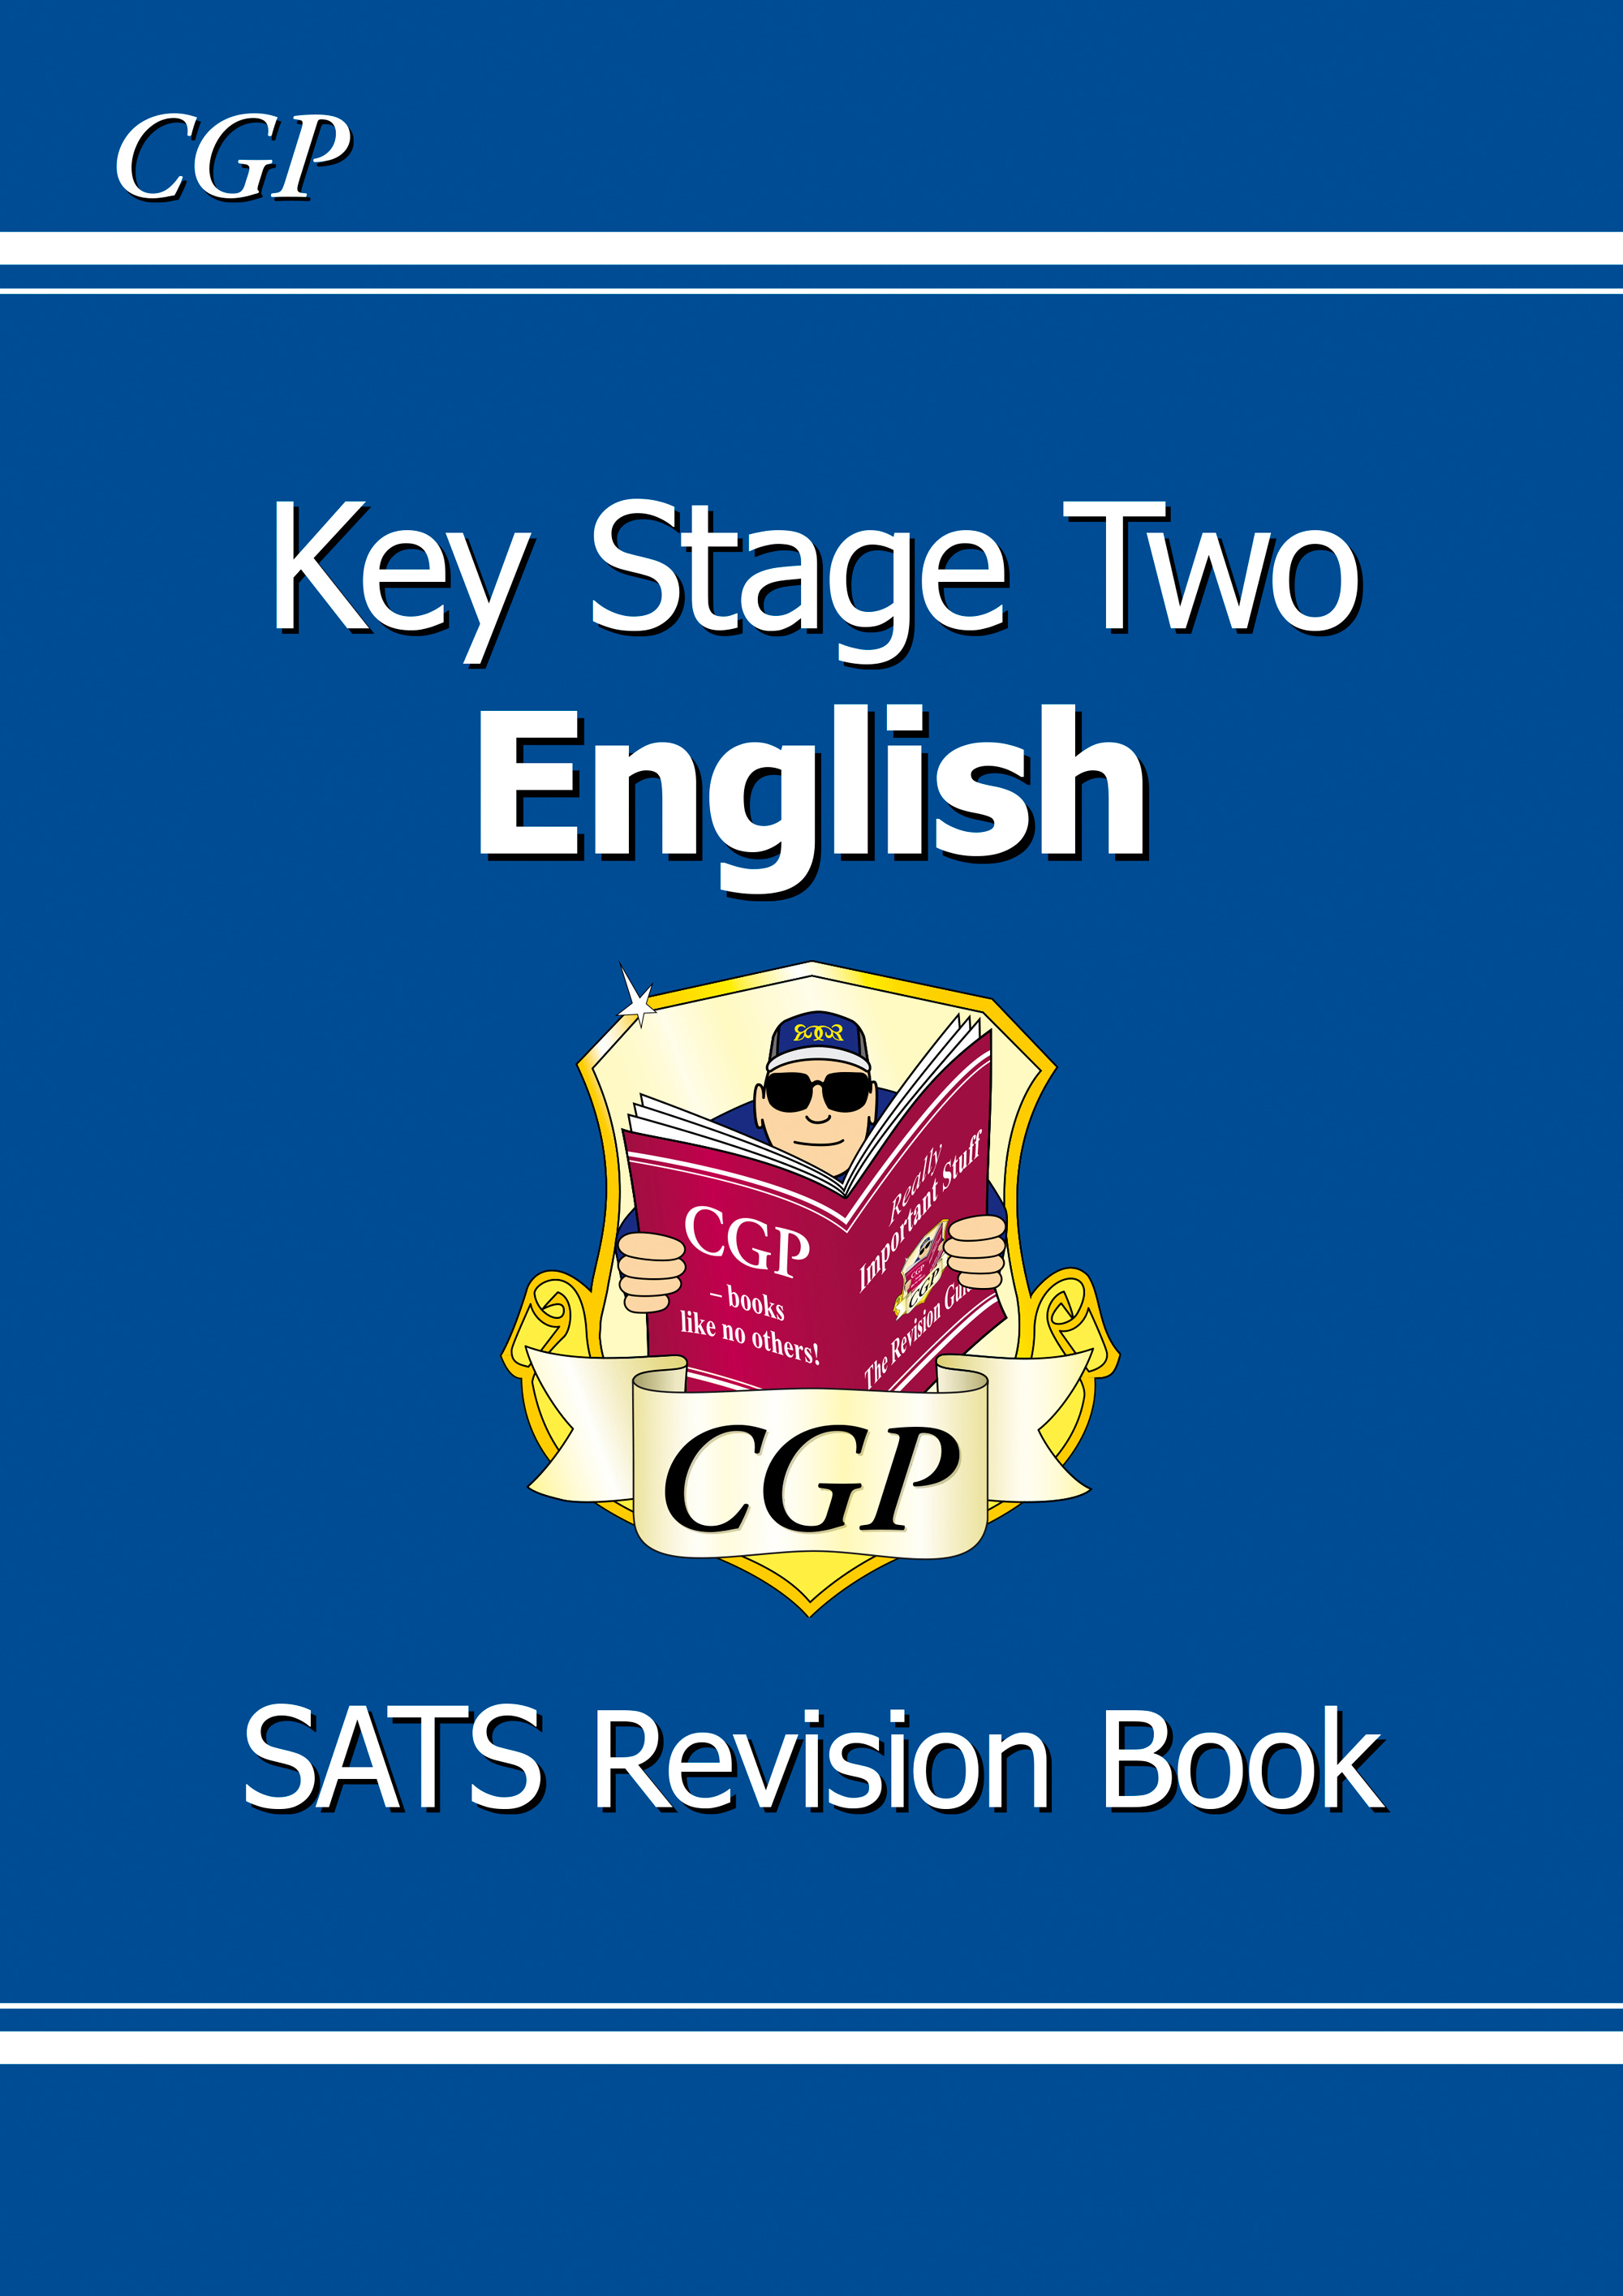 EHR25DK - KS2 English SATS Revision Book (for tests in 2018 and beyond)